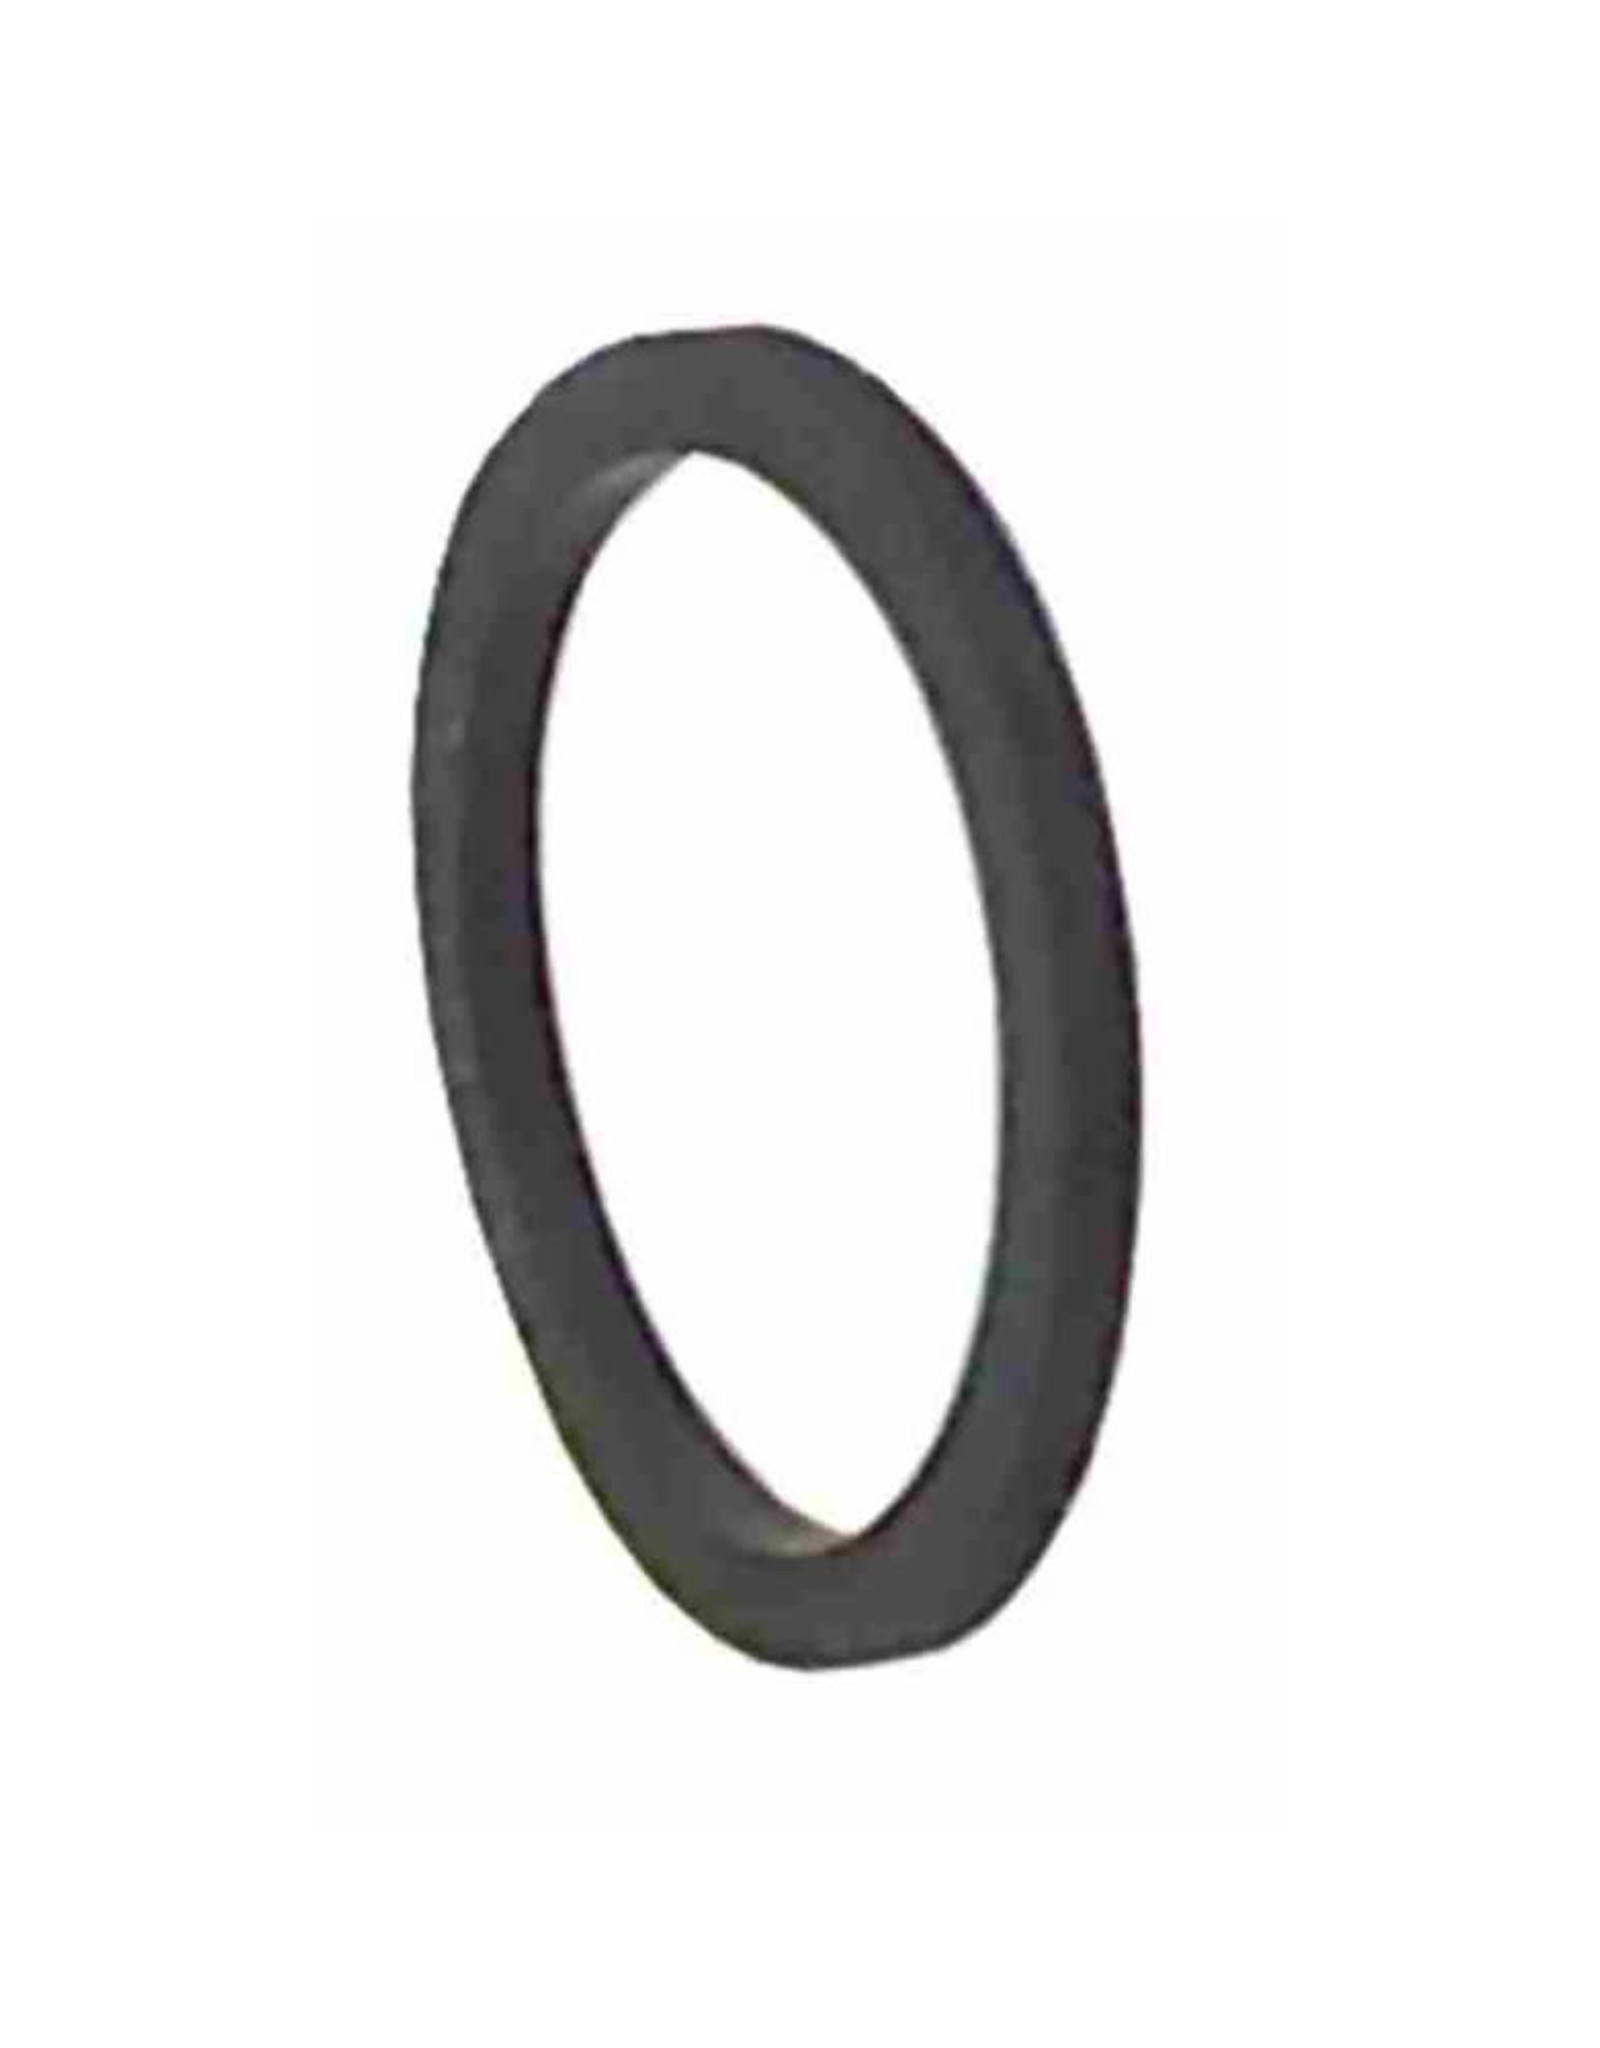 Draft Beer Faucet Body Gasket ( for all faucets except perlicks)